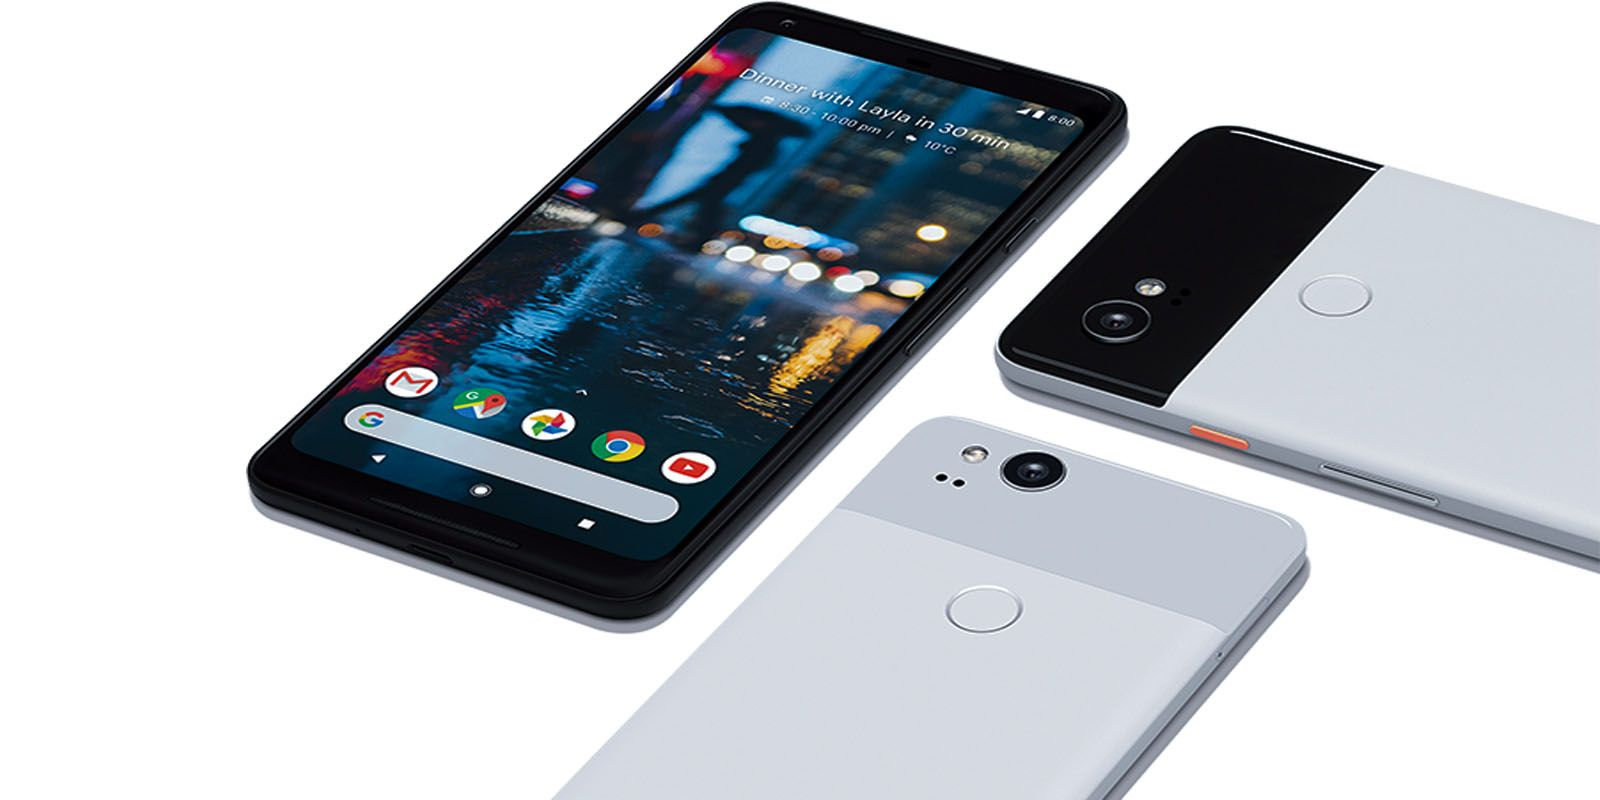 Google Pixel 2 Price In Bangladesh And Full Specifications Best Smartphone Camera Android Security Cool Things To Buy